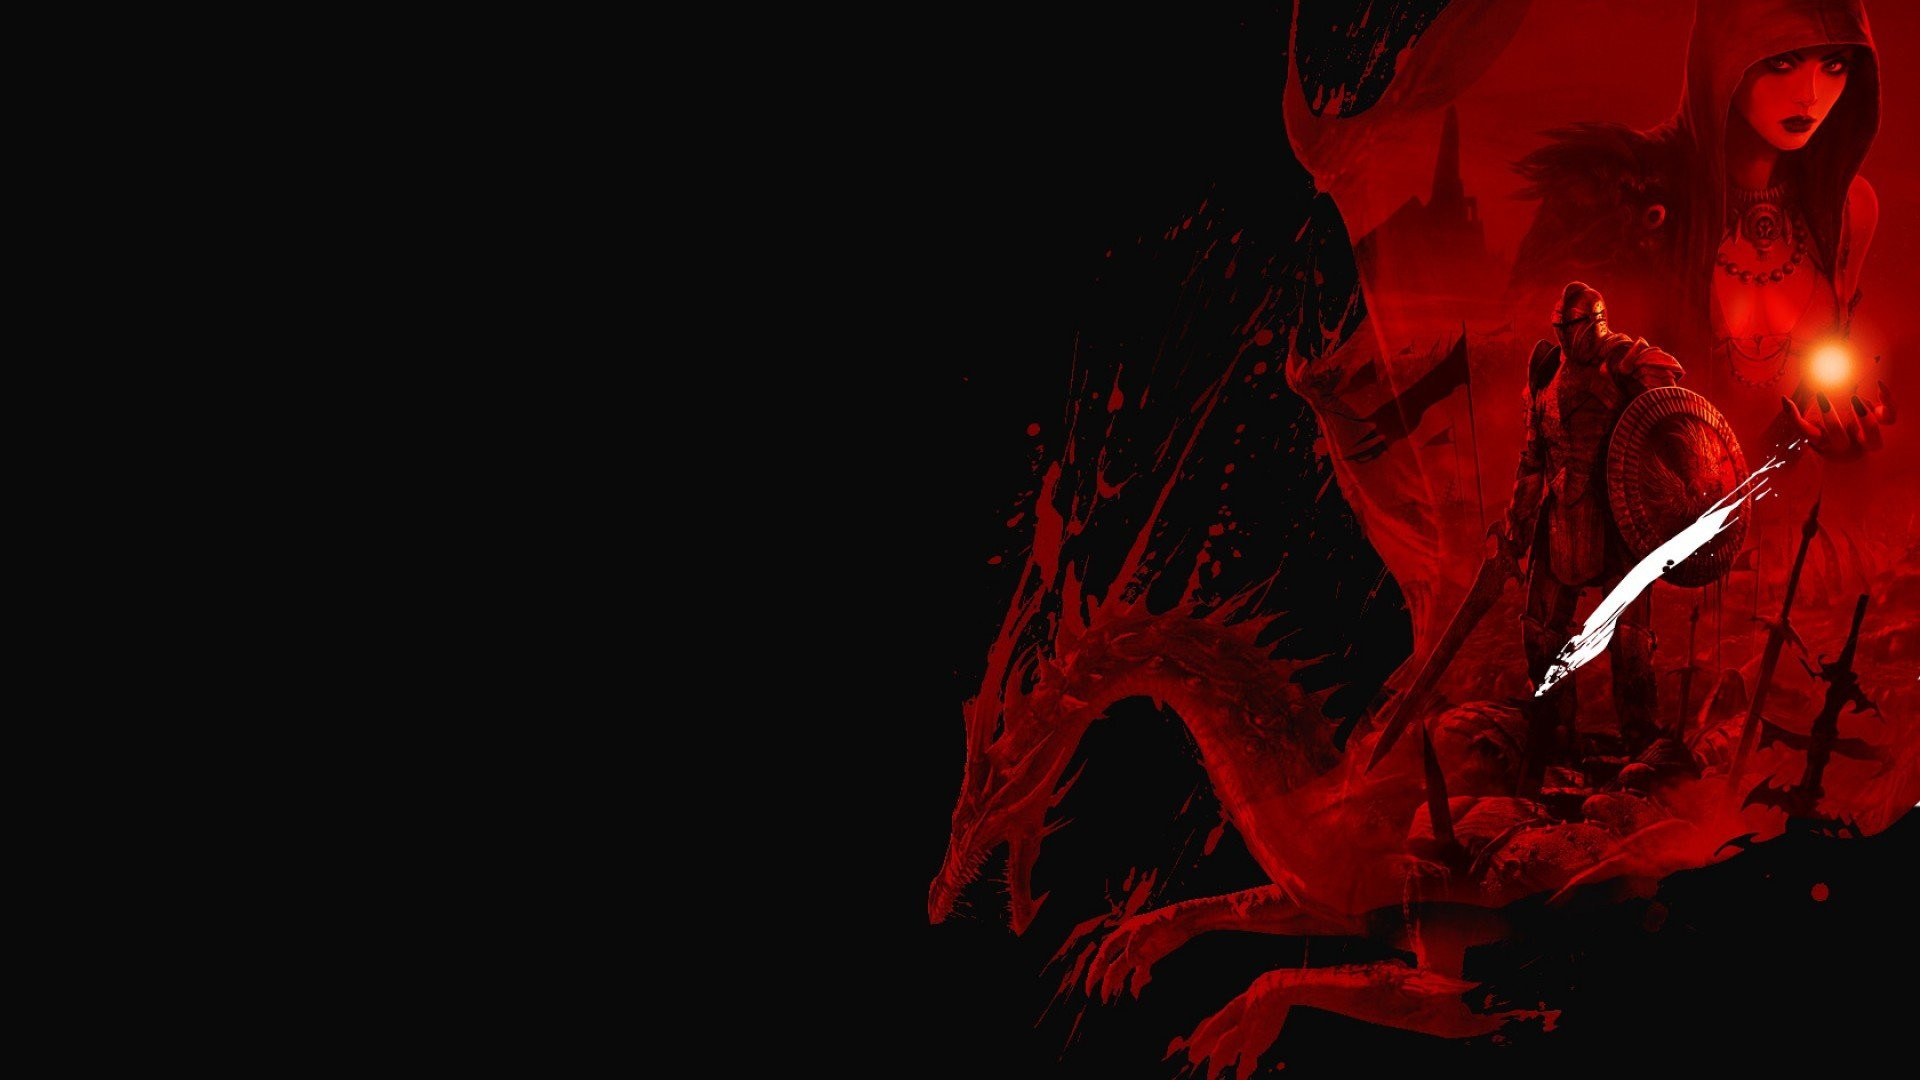 1920x1080 Red Dragon 550083. SHARE. TAGS: Desktop Dragon Red Black